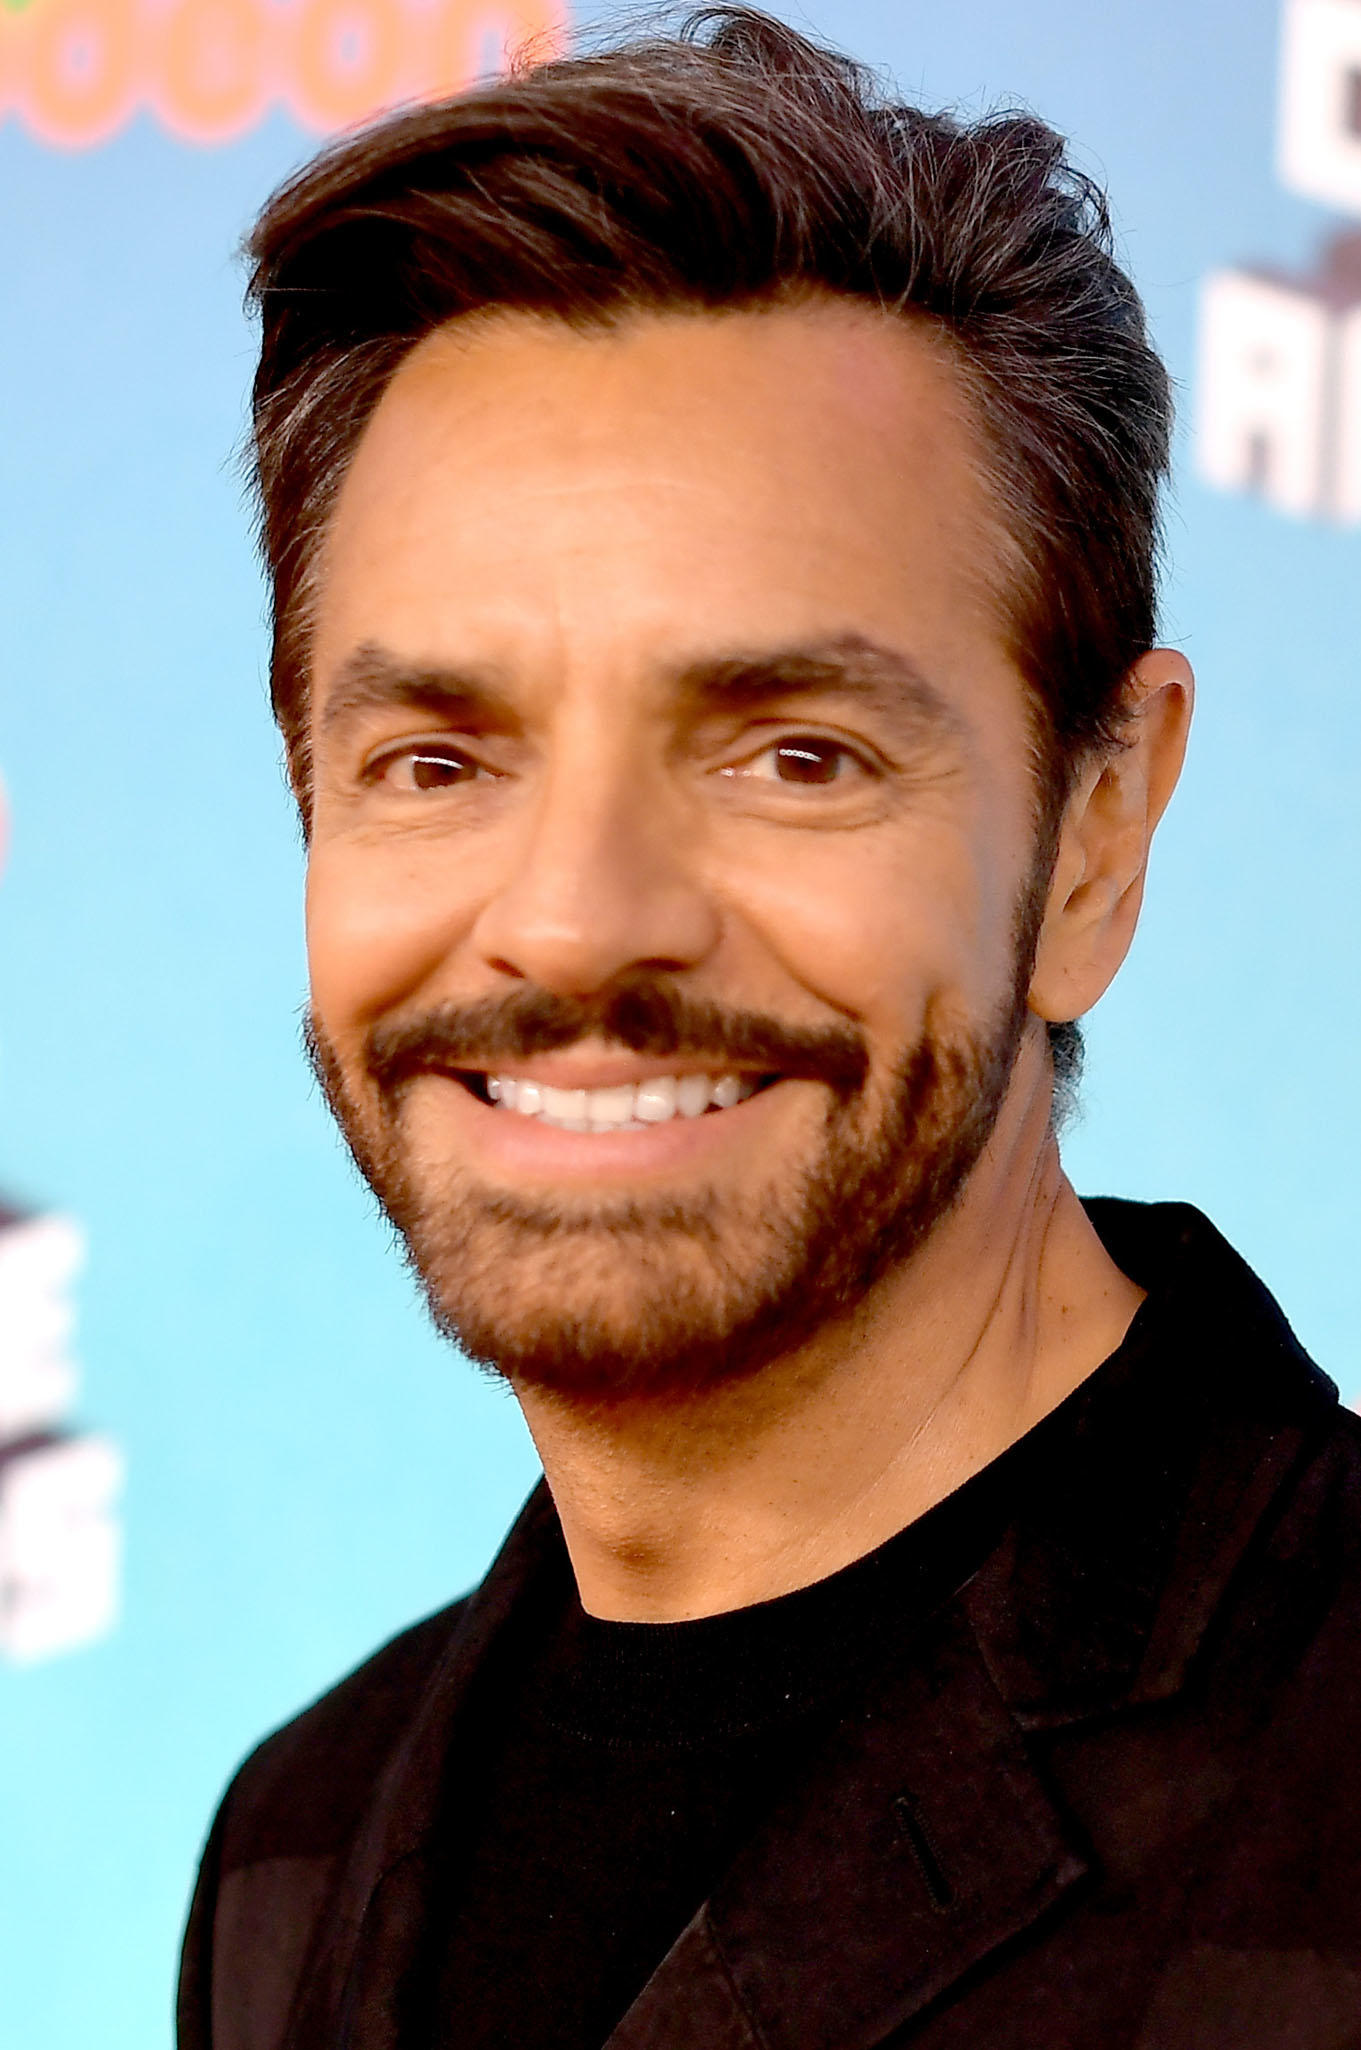 Eugenio Derbez at Nickelodeon's 2019 Kids' Choice Awards in Los Angeles.